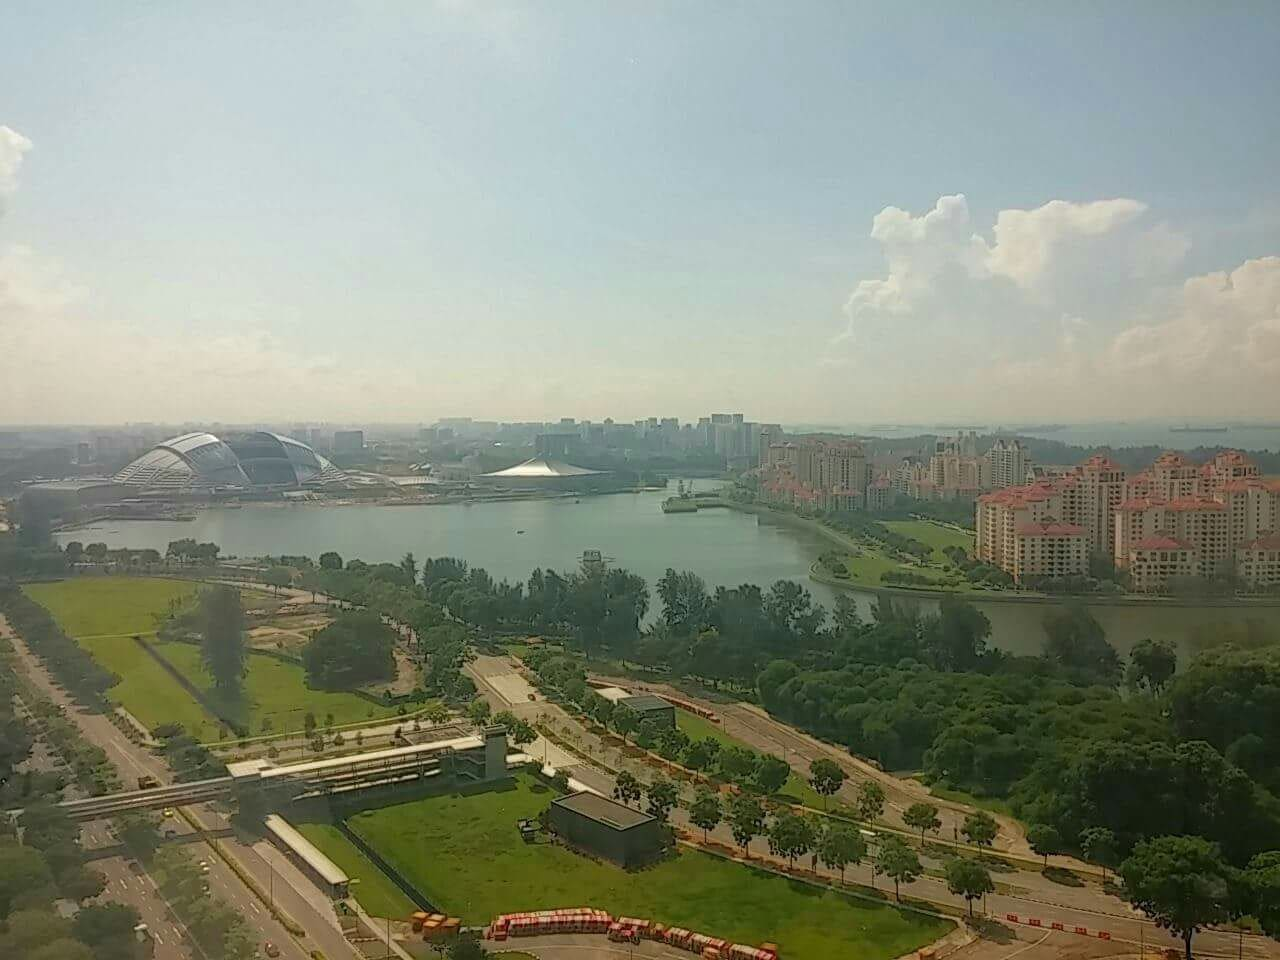 Unblocked view of the Kallang reservoir, National Stadium, Indoor Stadium and sea. Only 7 mins walk to Nicoll Highway Station, leading to Singapore Flyer, Gardens By The Bay, Marina Bay Sands.